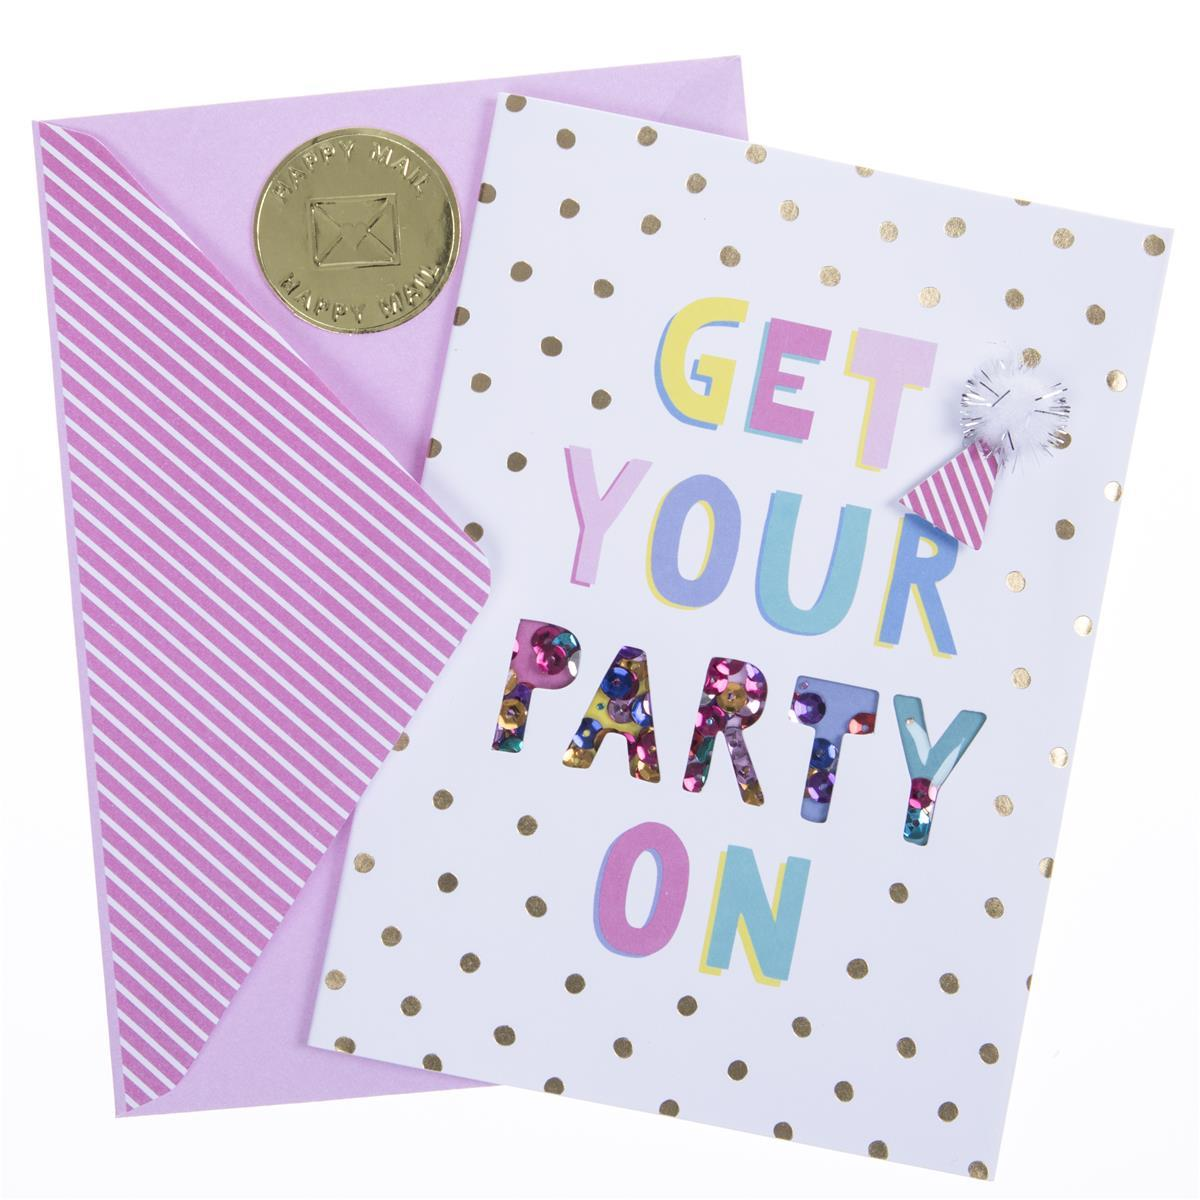 Get Your Party On Birthday Handmade Card